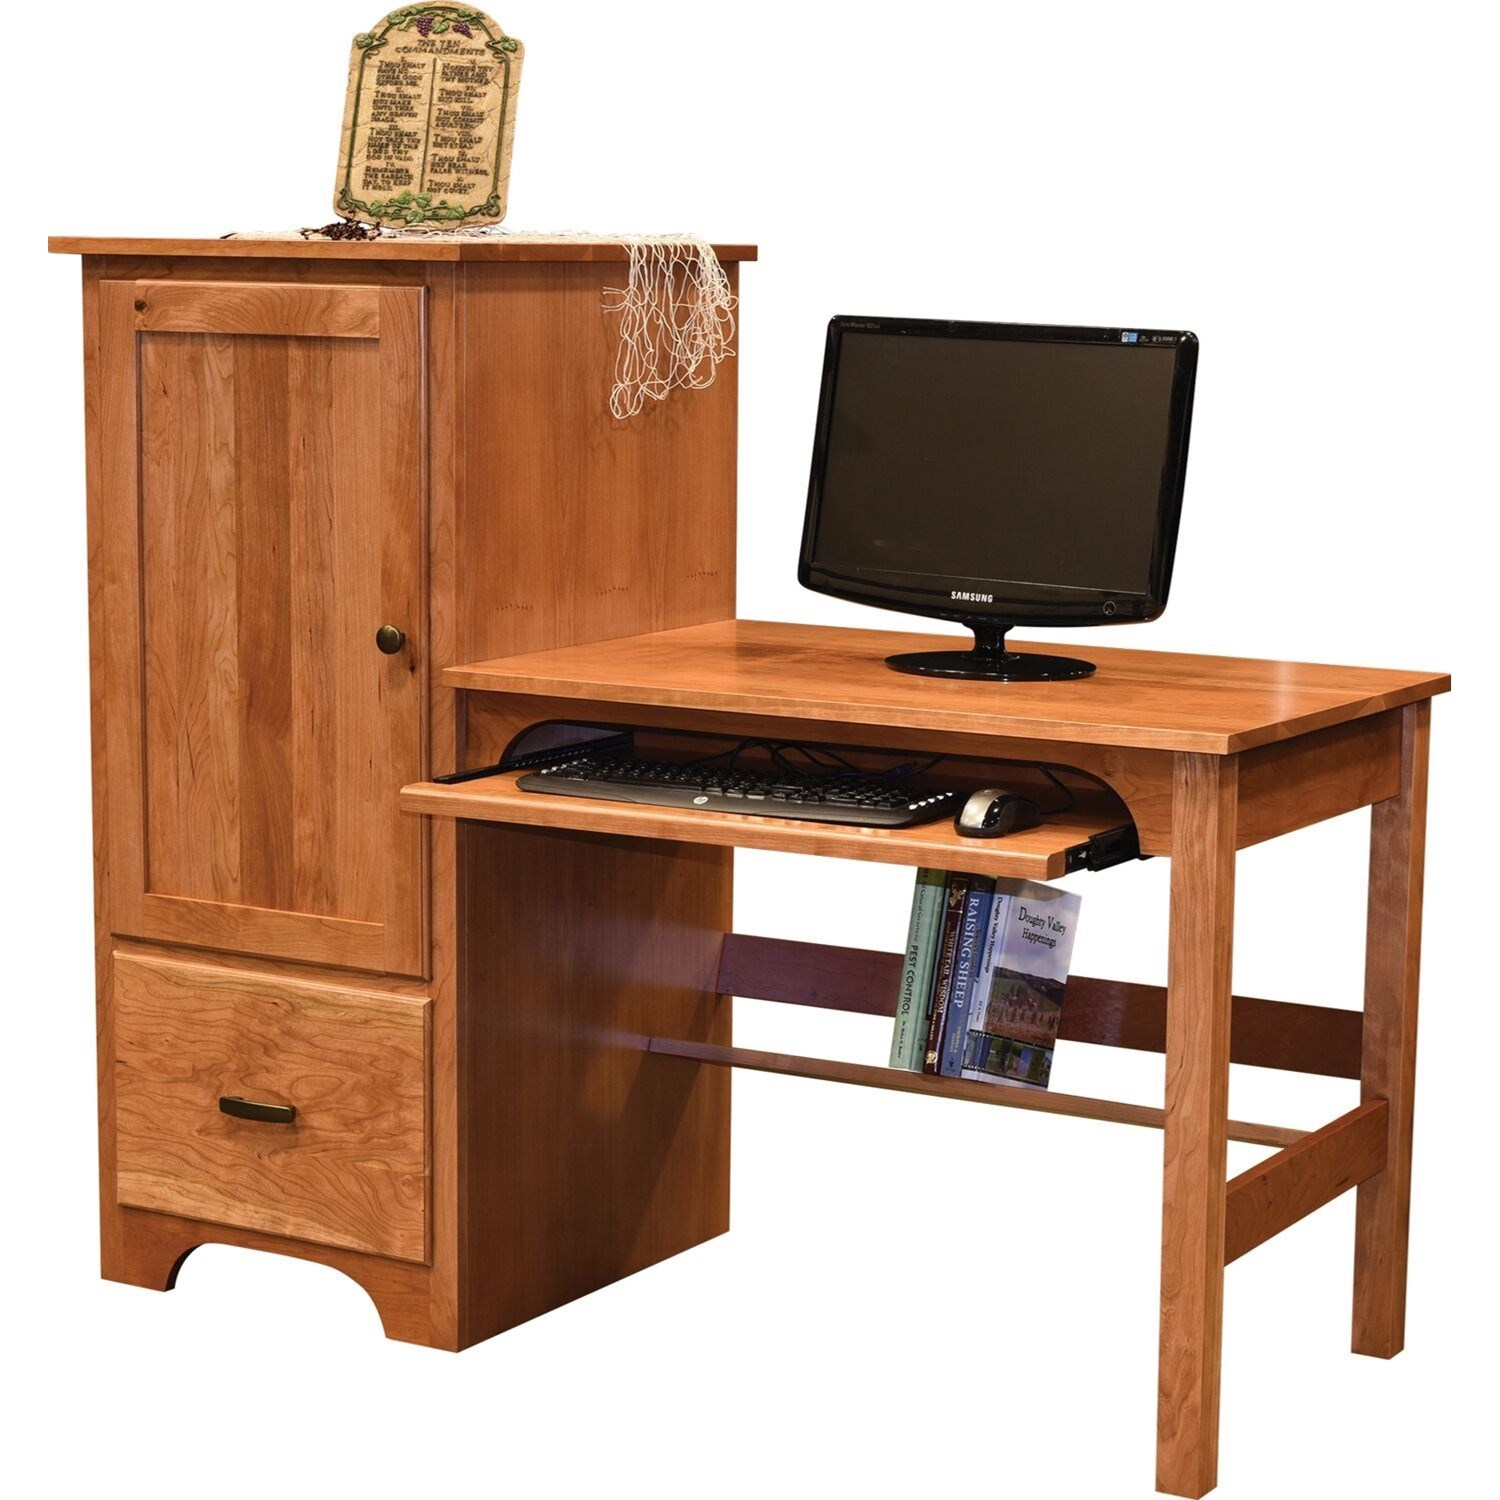 Clark Computer Desk by Maple Hill Woodworking at Saugerties Furniture Mart